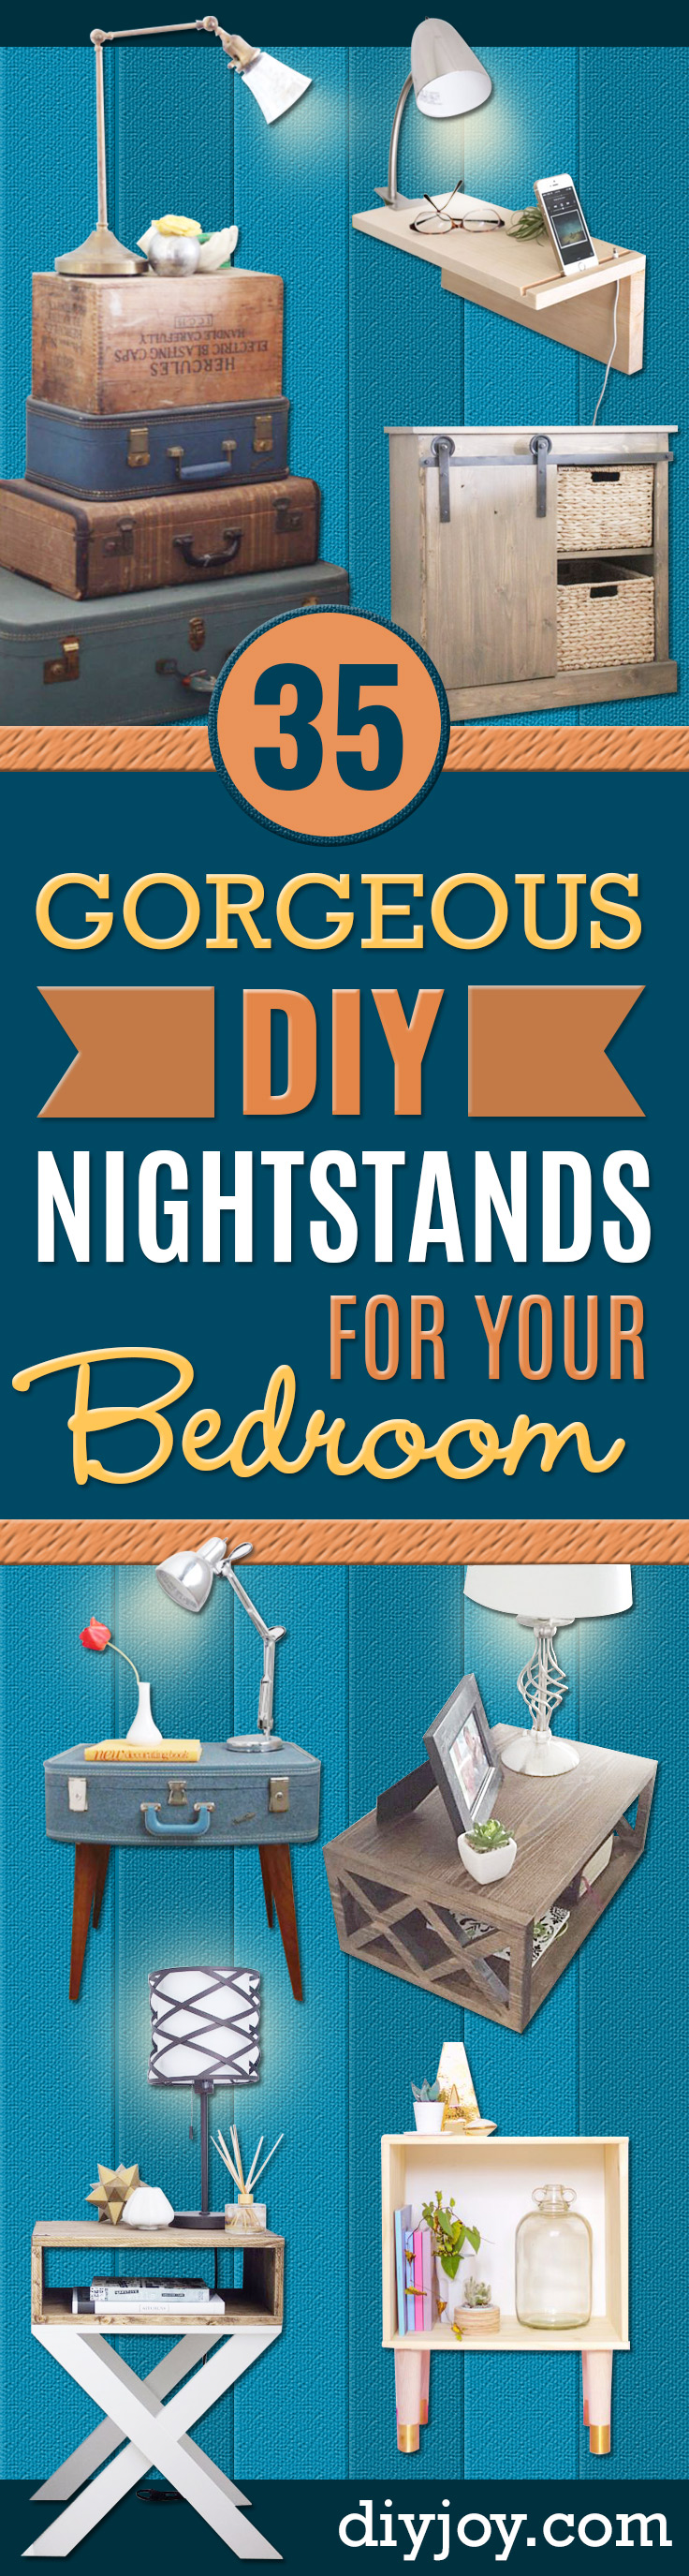 35 gorgeous diy nightstands for your bedroom diy nightstands for the bedroom easy do it yourself bedside tables and furniture project ideas solutioingenieria Image collections